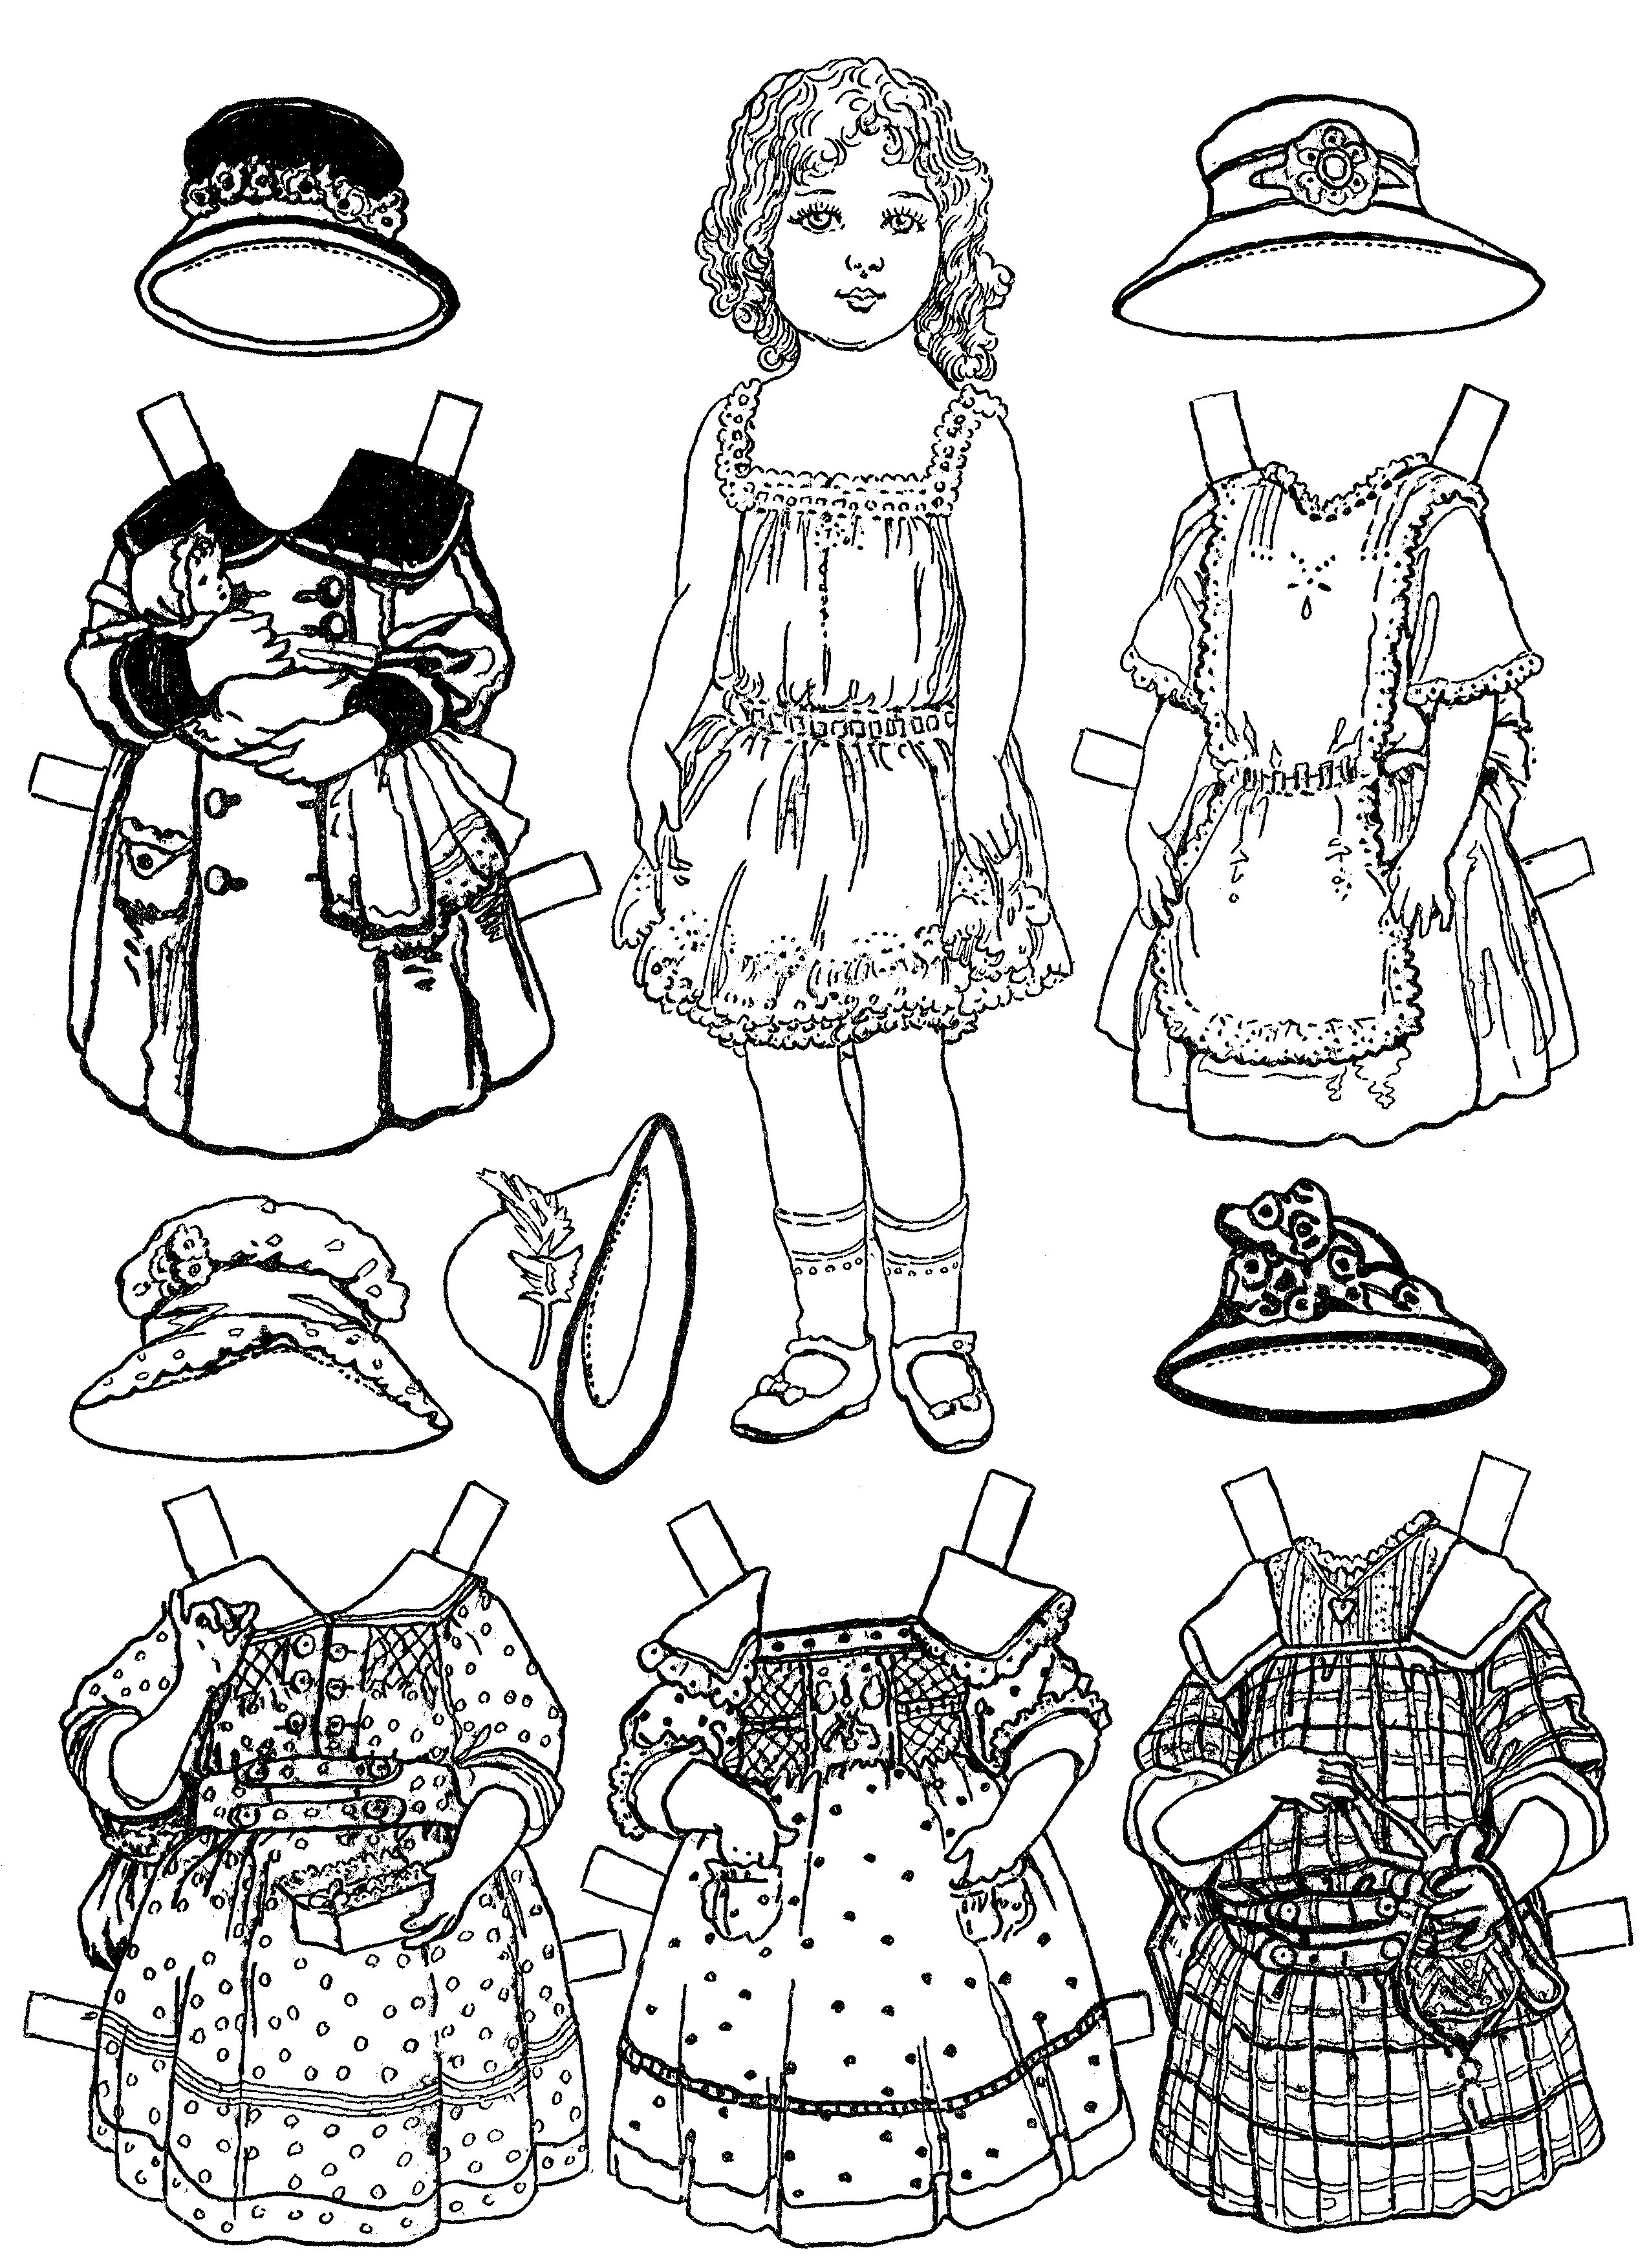 dolls colouring pages free printable paper doll coloring pages for kids dolls colouring pages